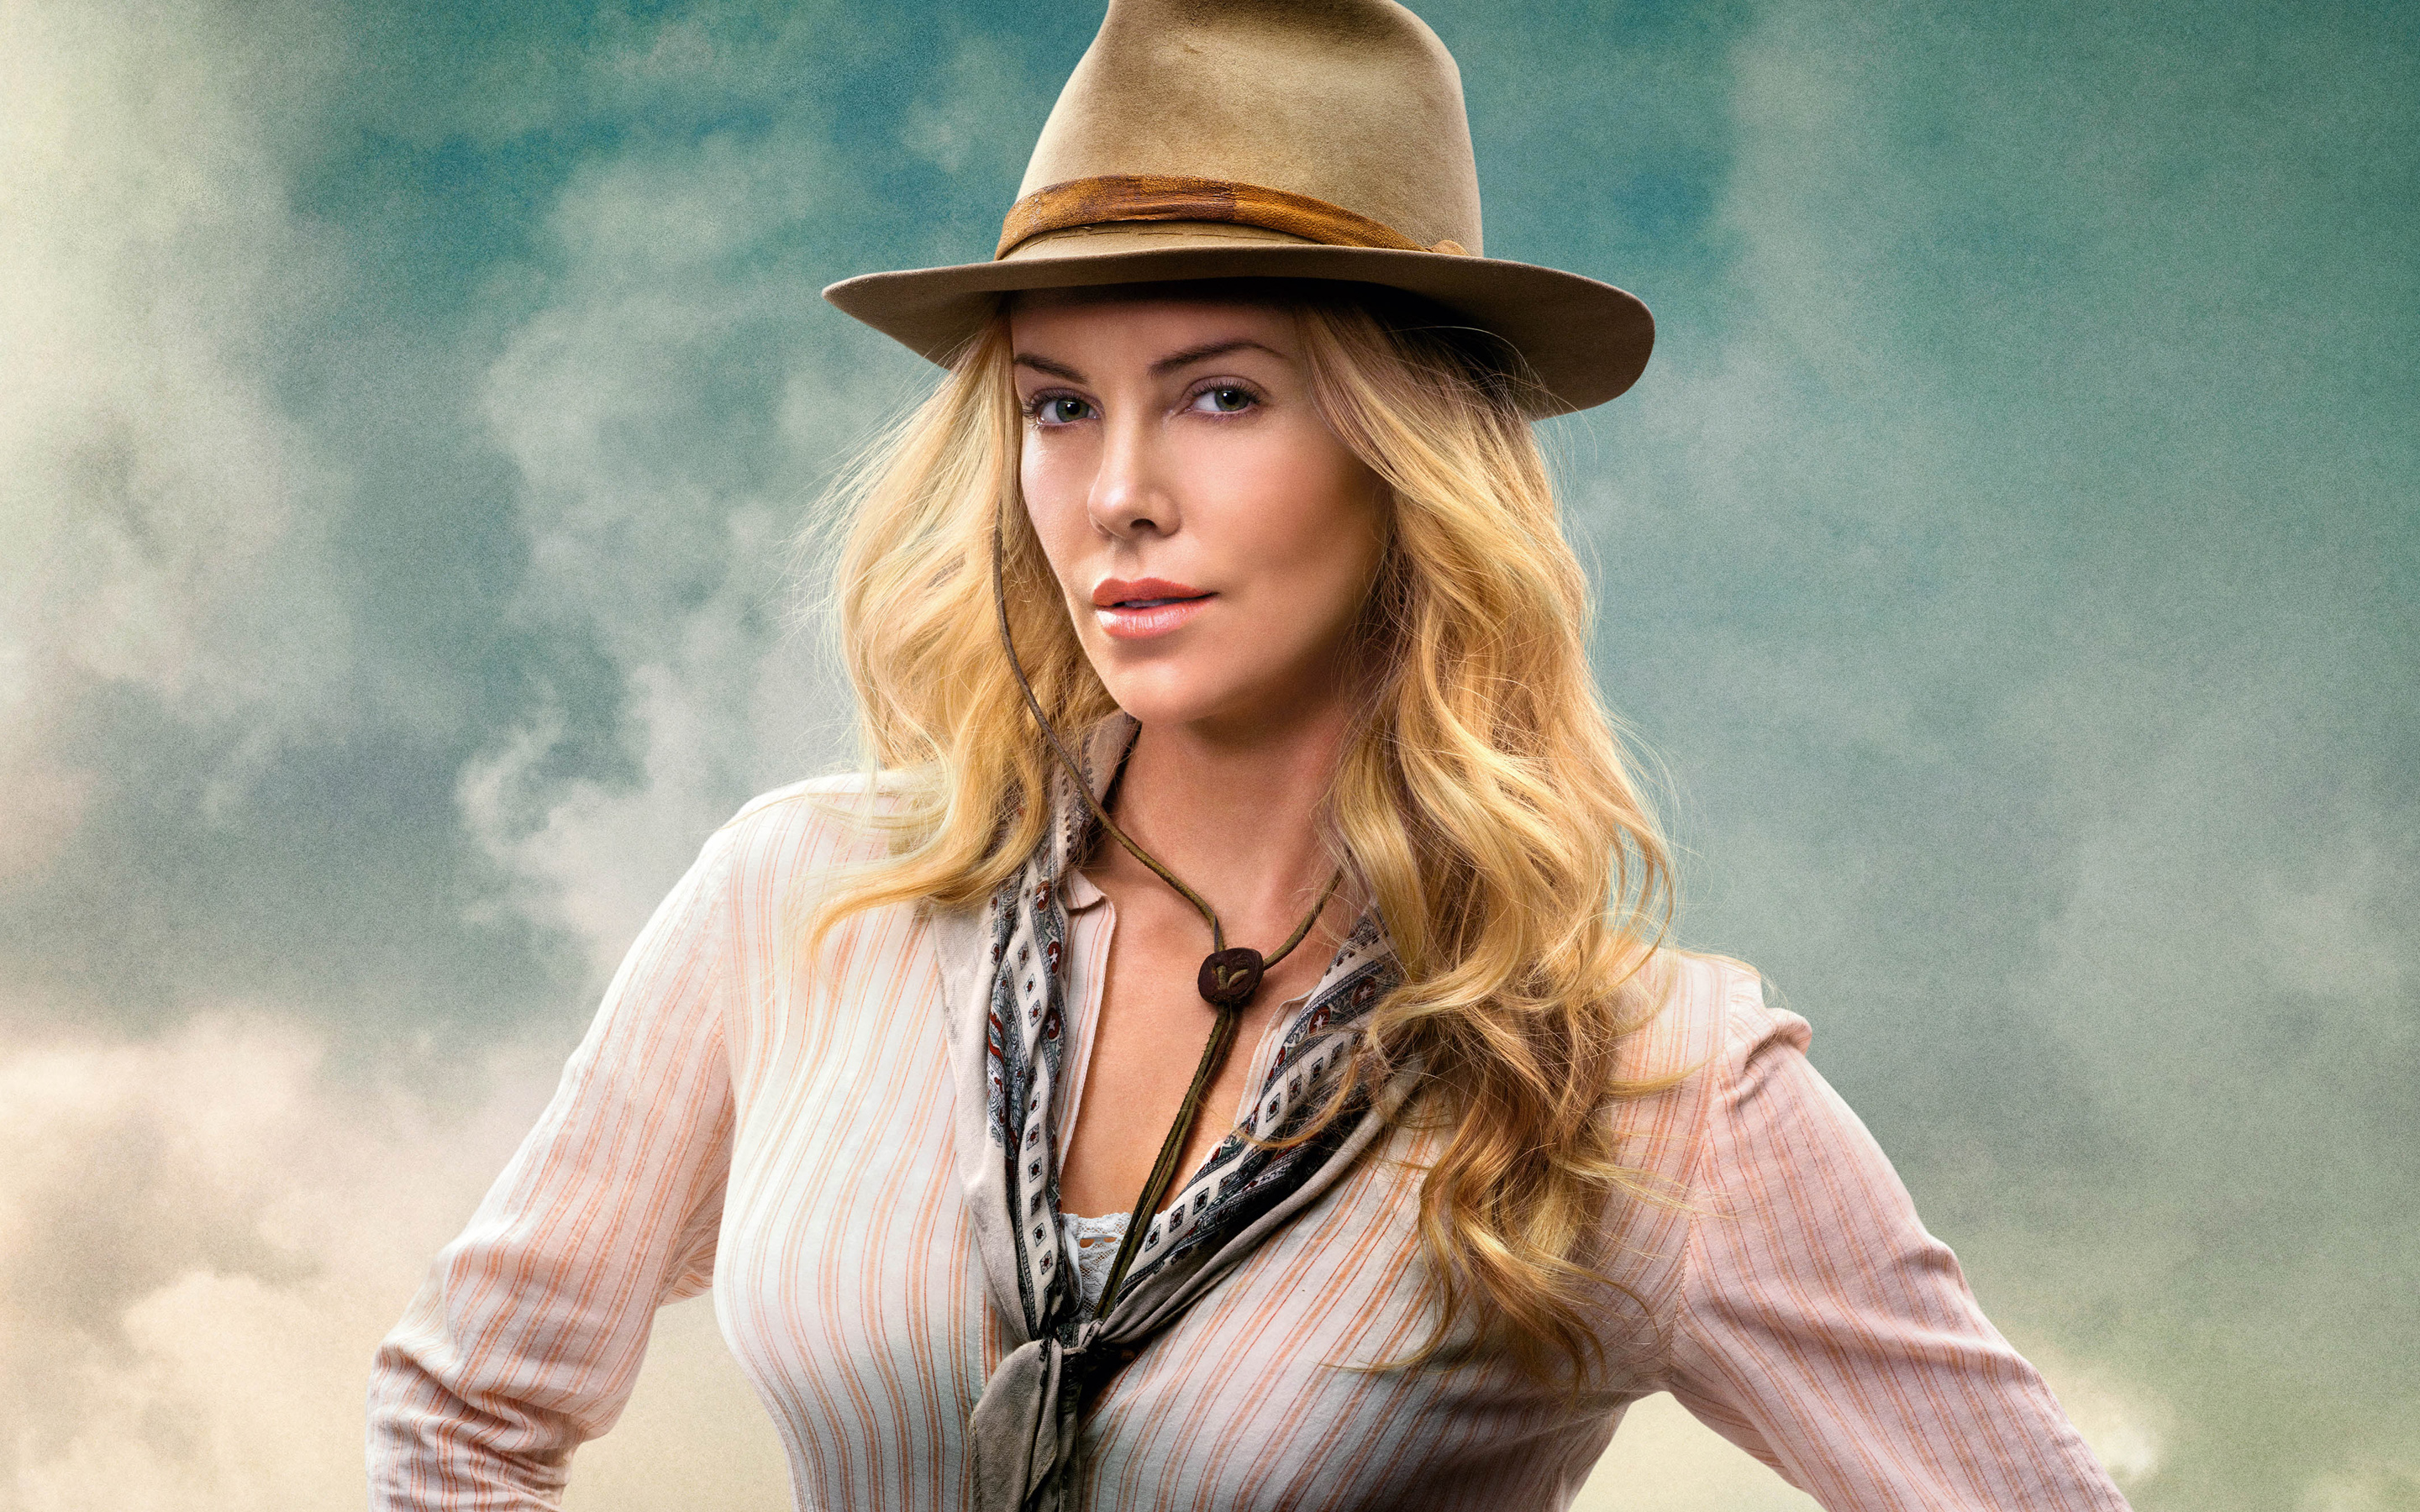 HD Wallpapers Charlize Theron in A Million Ways to Die in the West